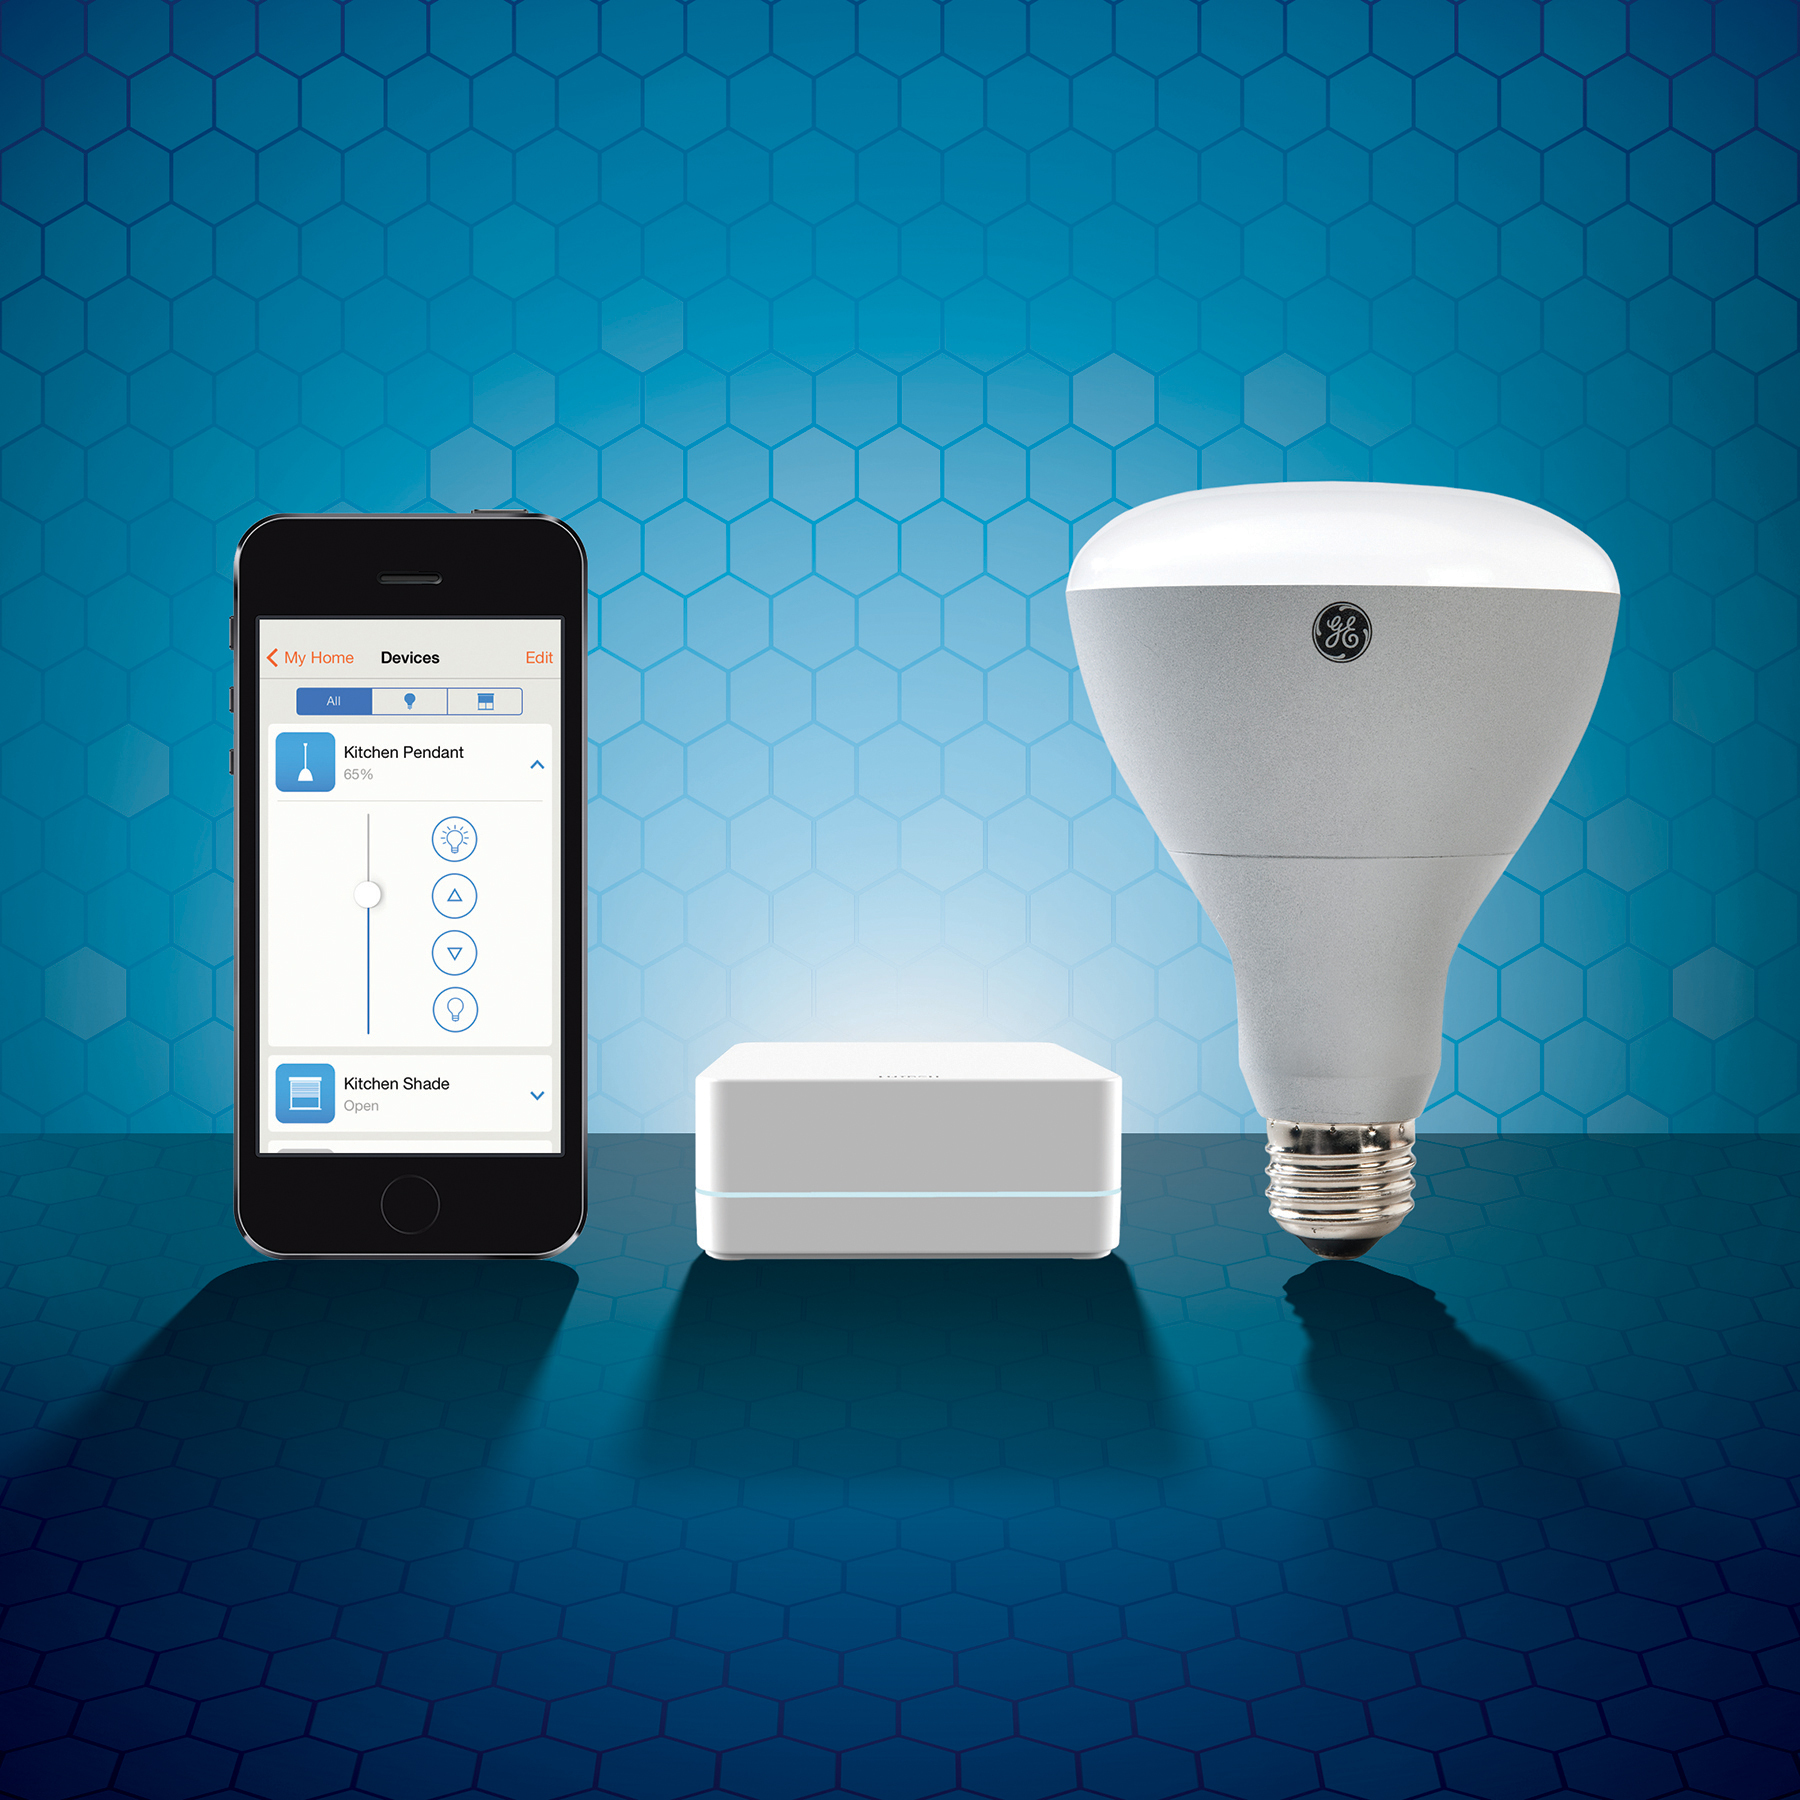 Control your lights using HomeKit with Lutron's Caséta Wireless Smart Bridge